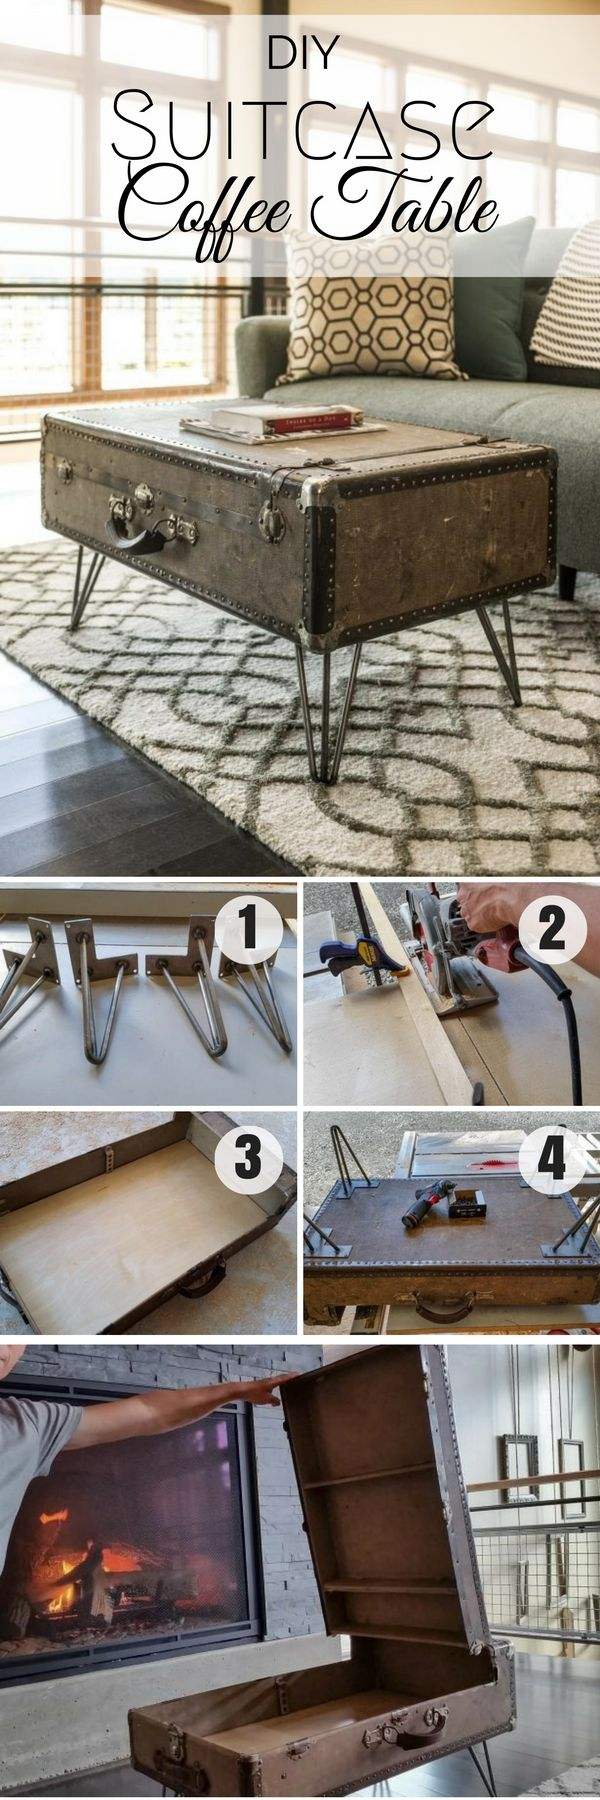 10 best coffee tables images on Pinterest | Chairs, Crafts and ...